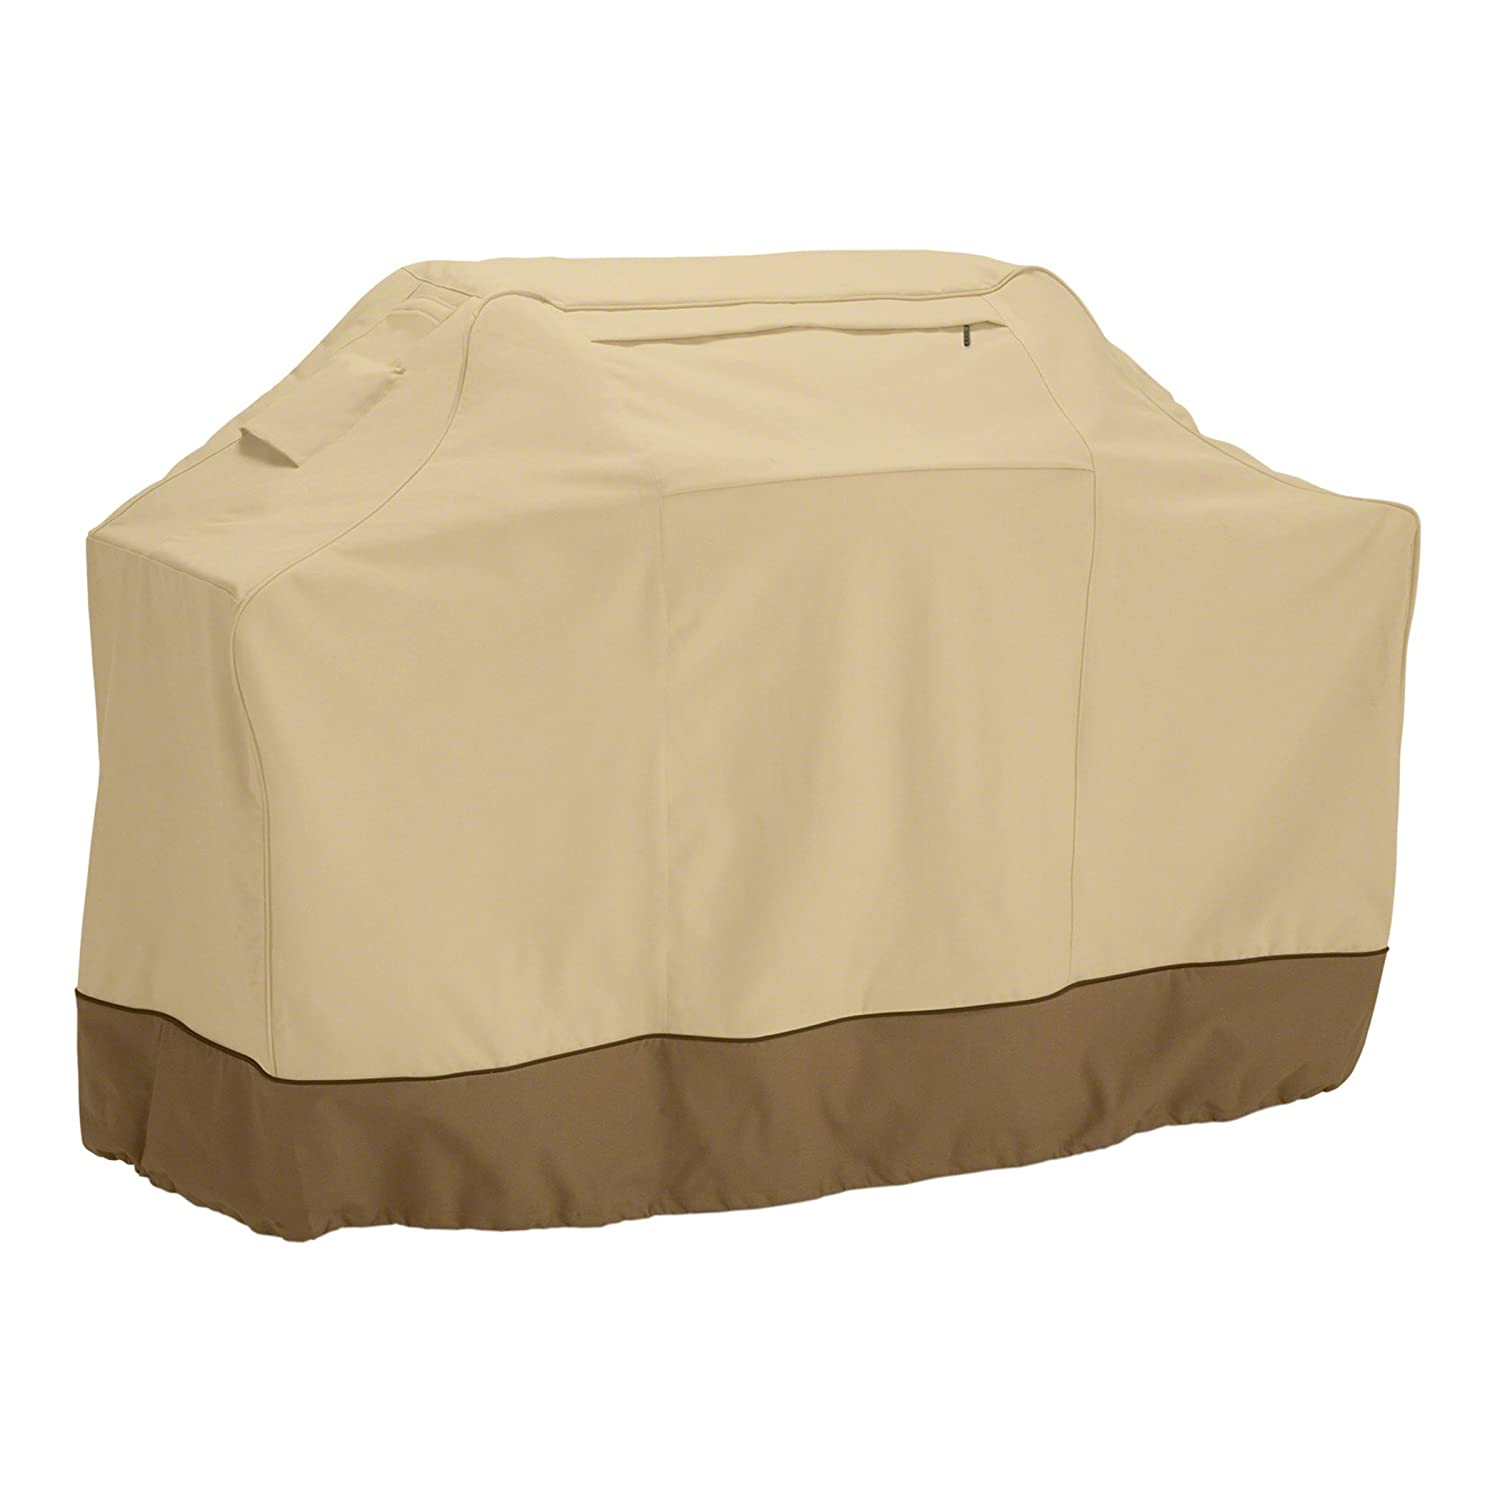 Classic Accessories 73922 Veranda Grill Cover, Large, Pebble